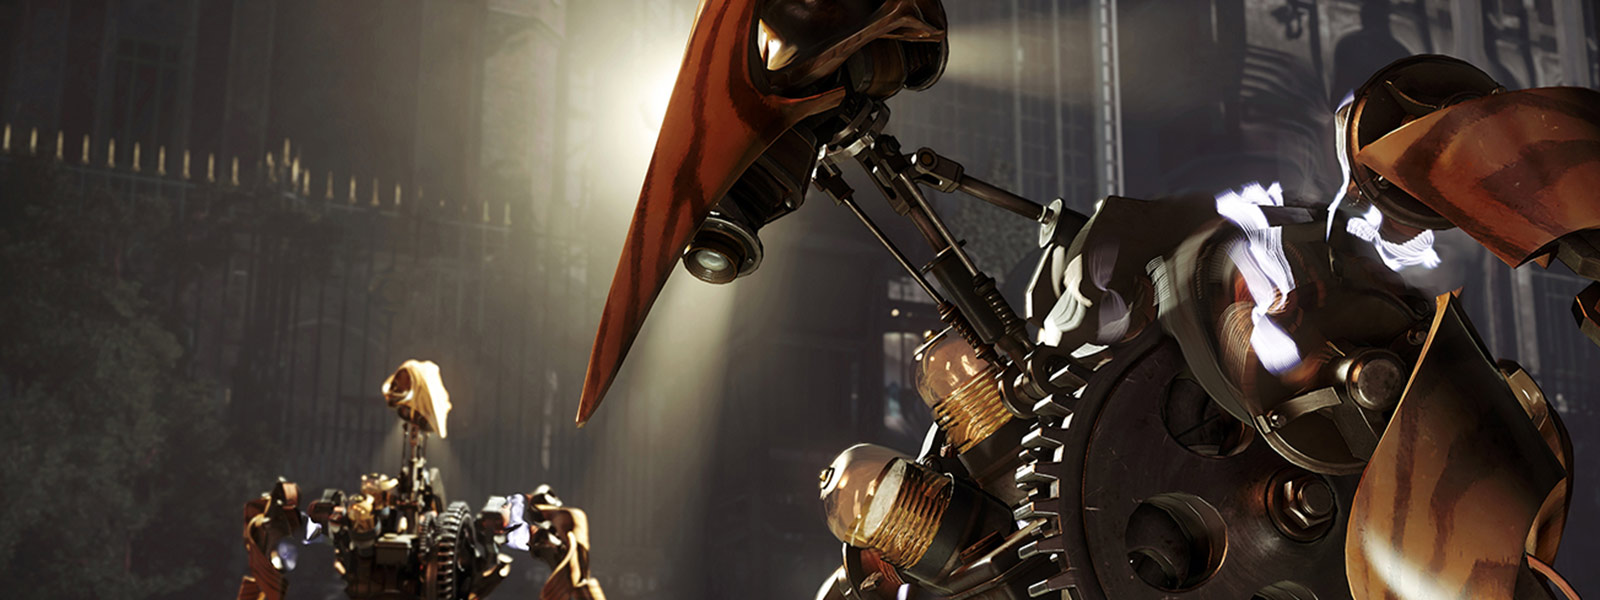 Robot Void Engine en Dishonored 2